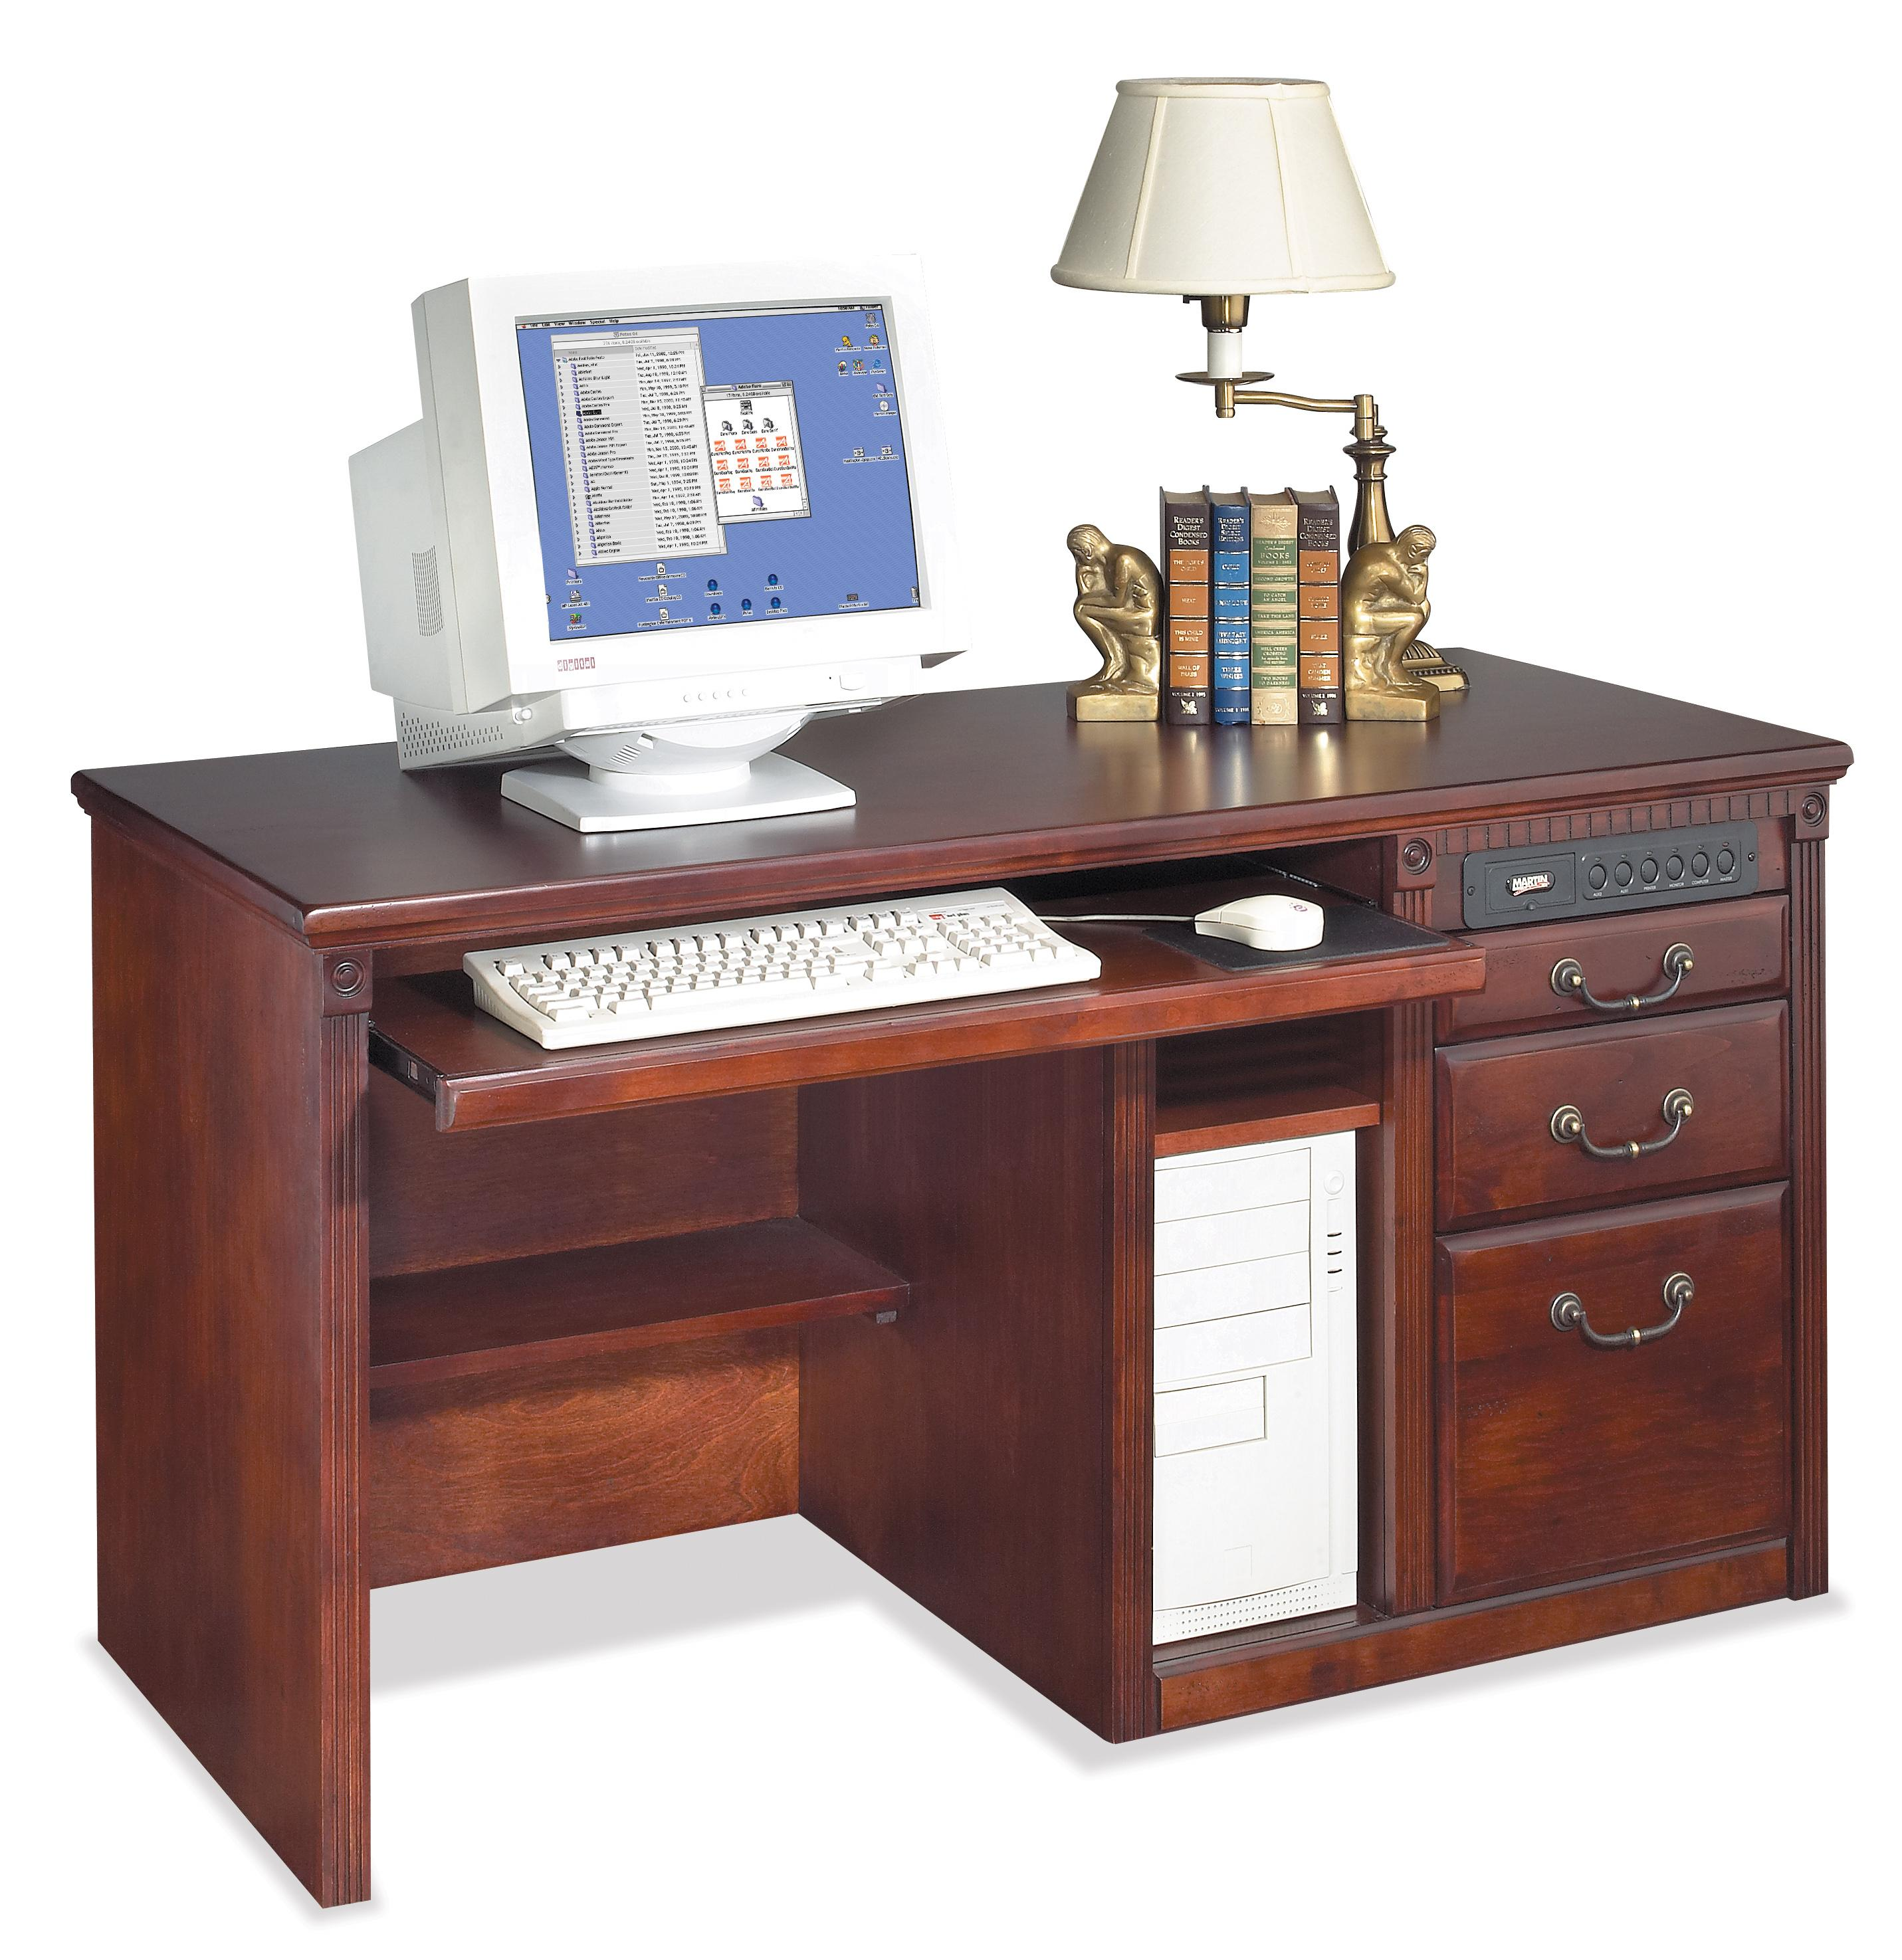 kathy ireland Home by Martin Huntington Club Three Drawer Computer Desk - Item Number: HCR540